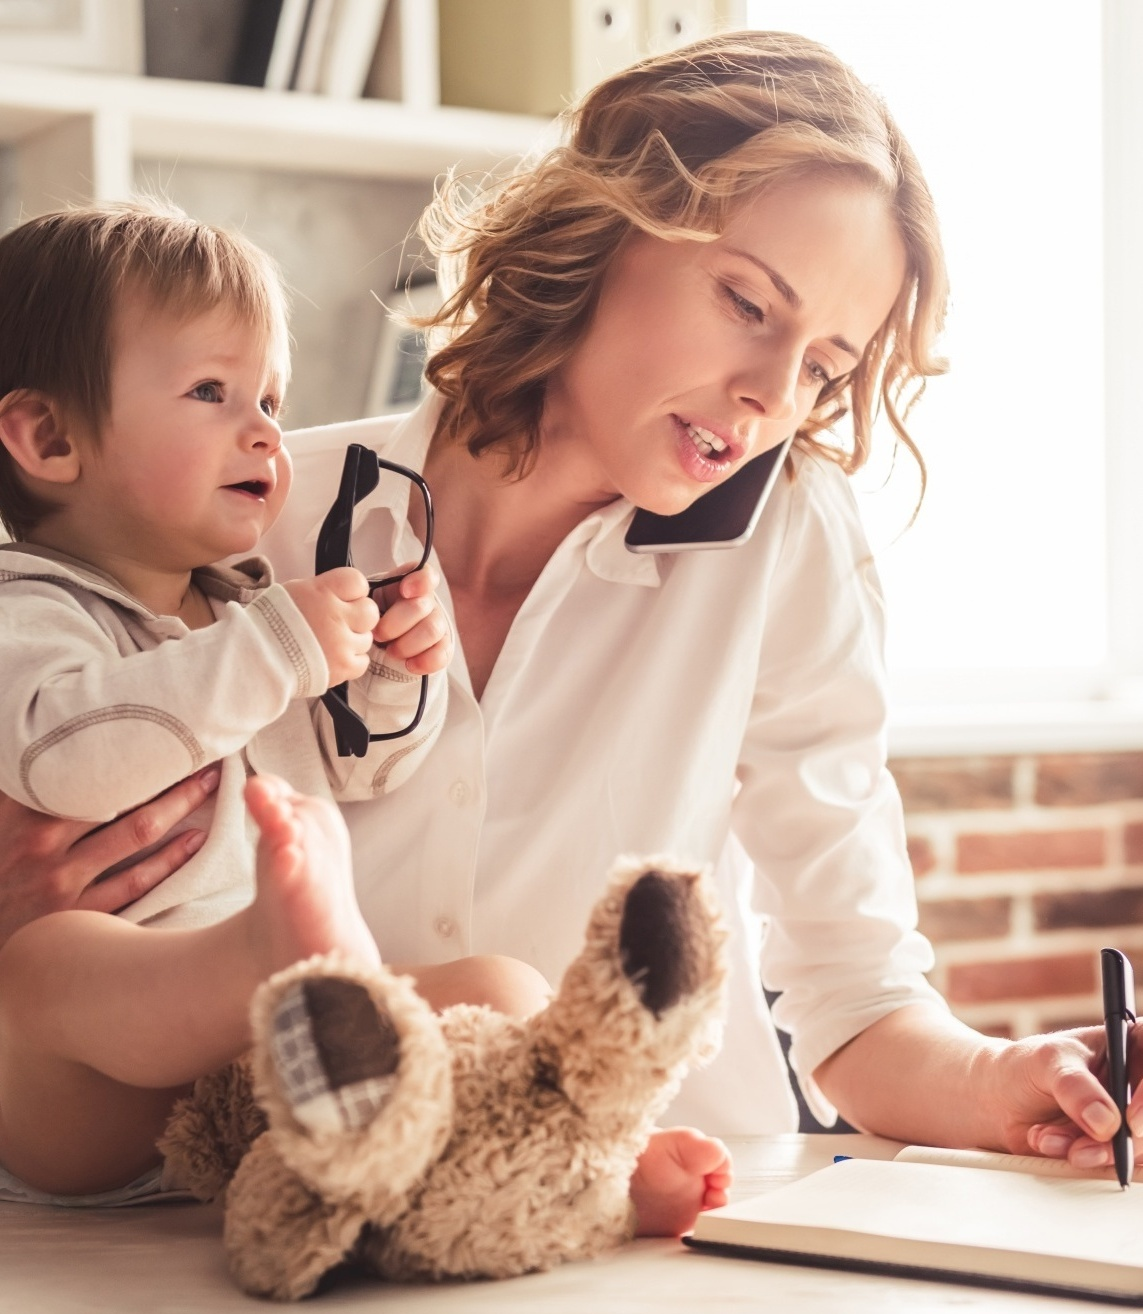 What Saying NO Can Do, blonde woman working and writing holding her baby who has taken glasses and has a stuffed animal